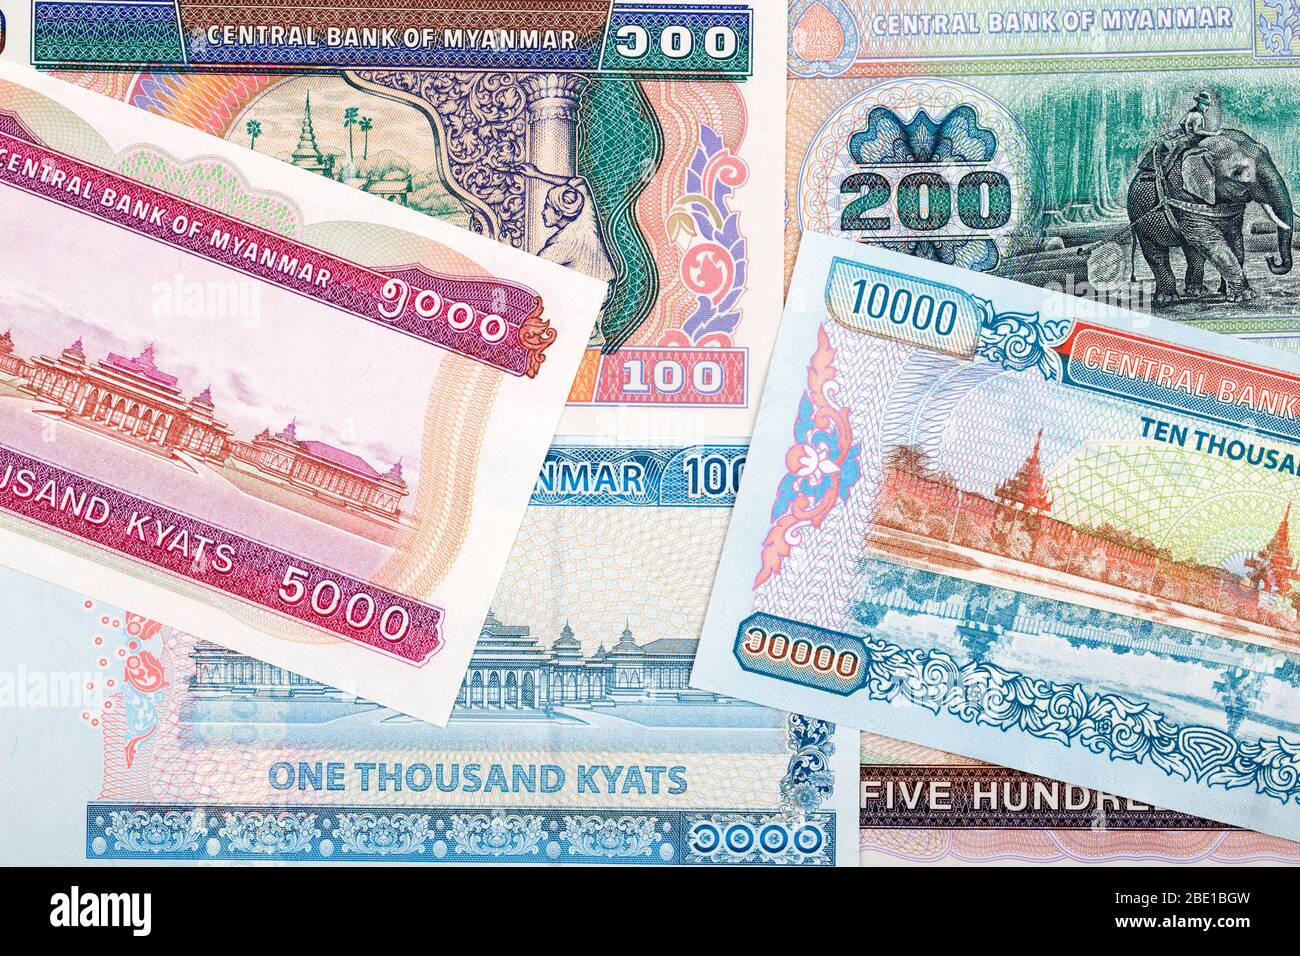 Currency of Myanmar - Kyat a business background Stock Photo - Alamy